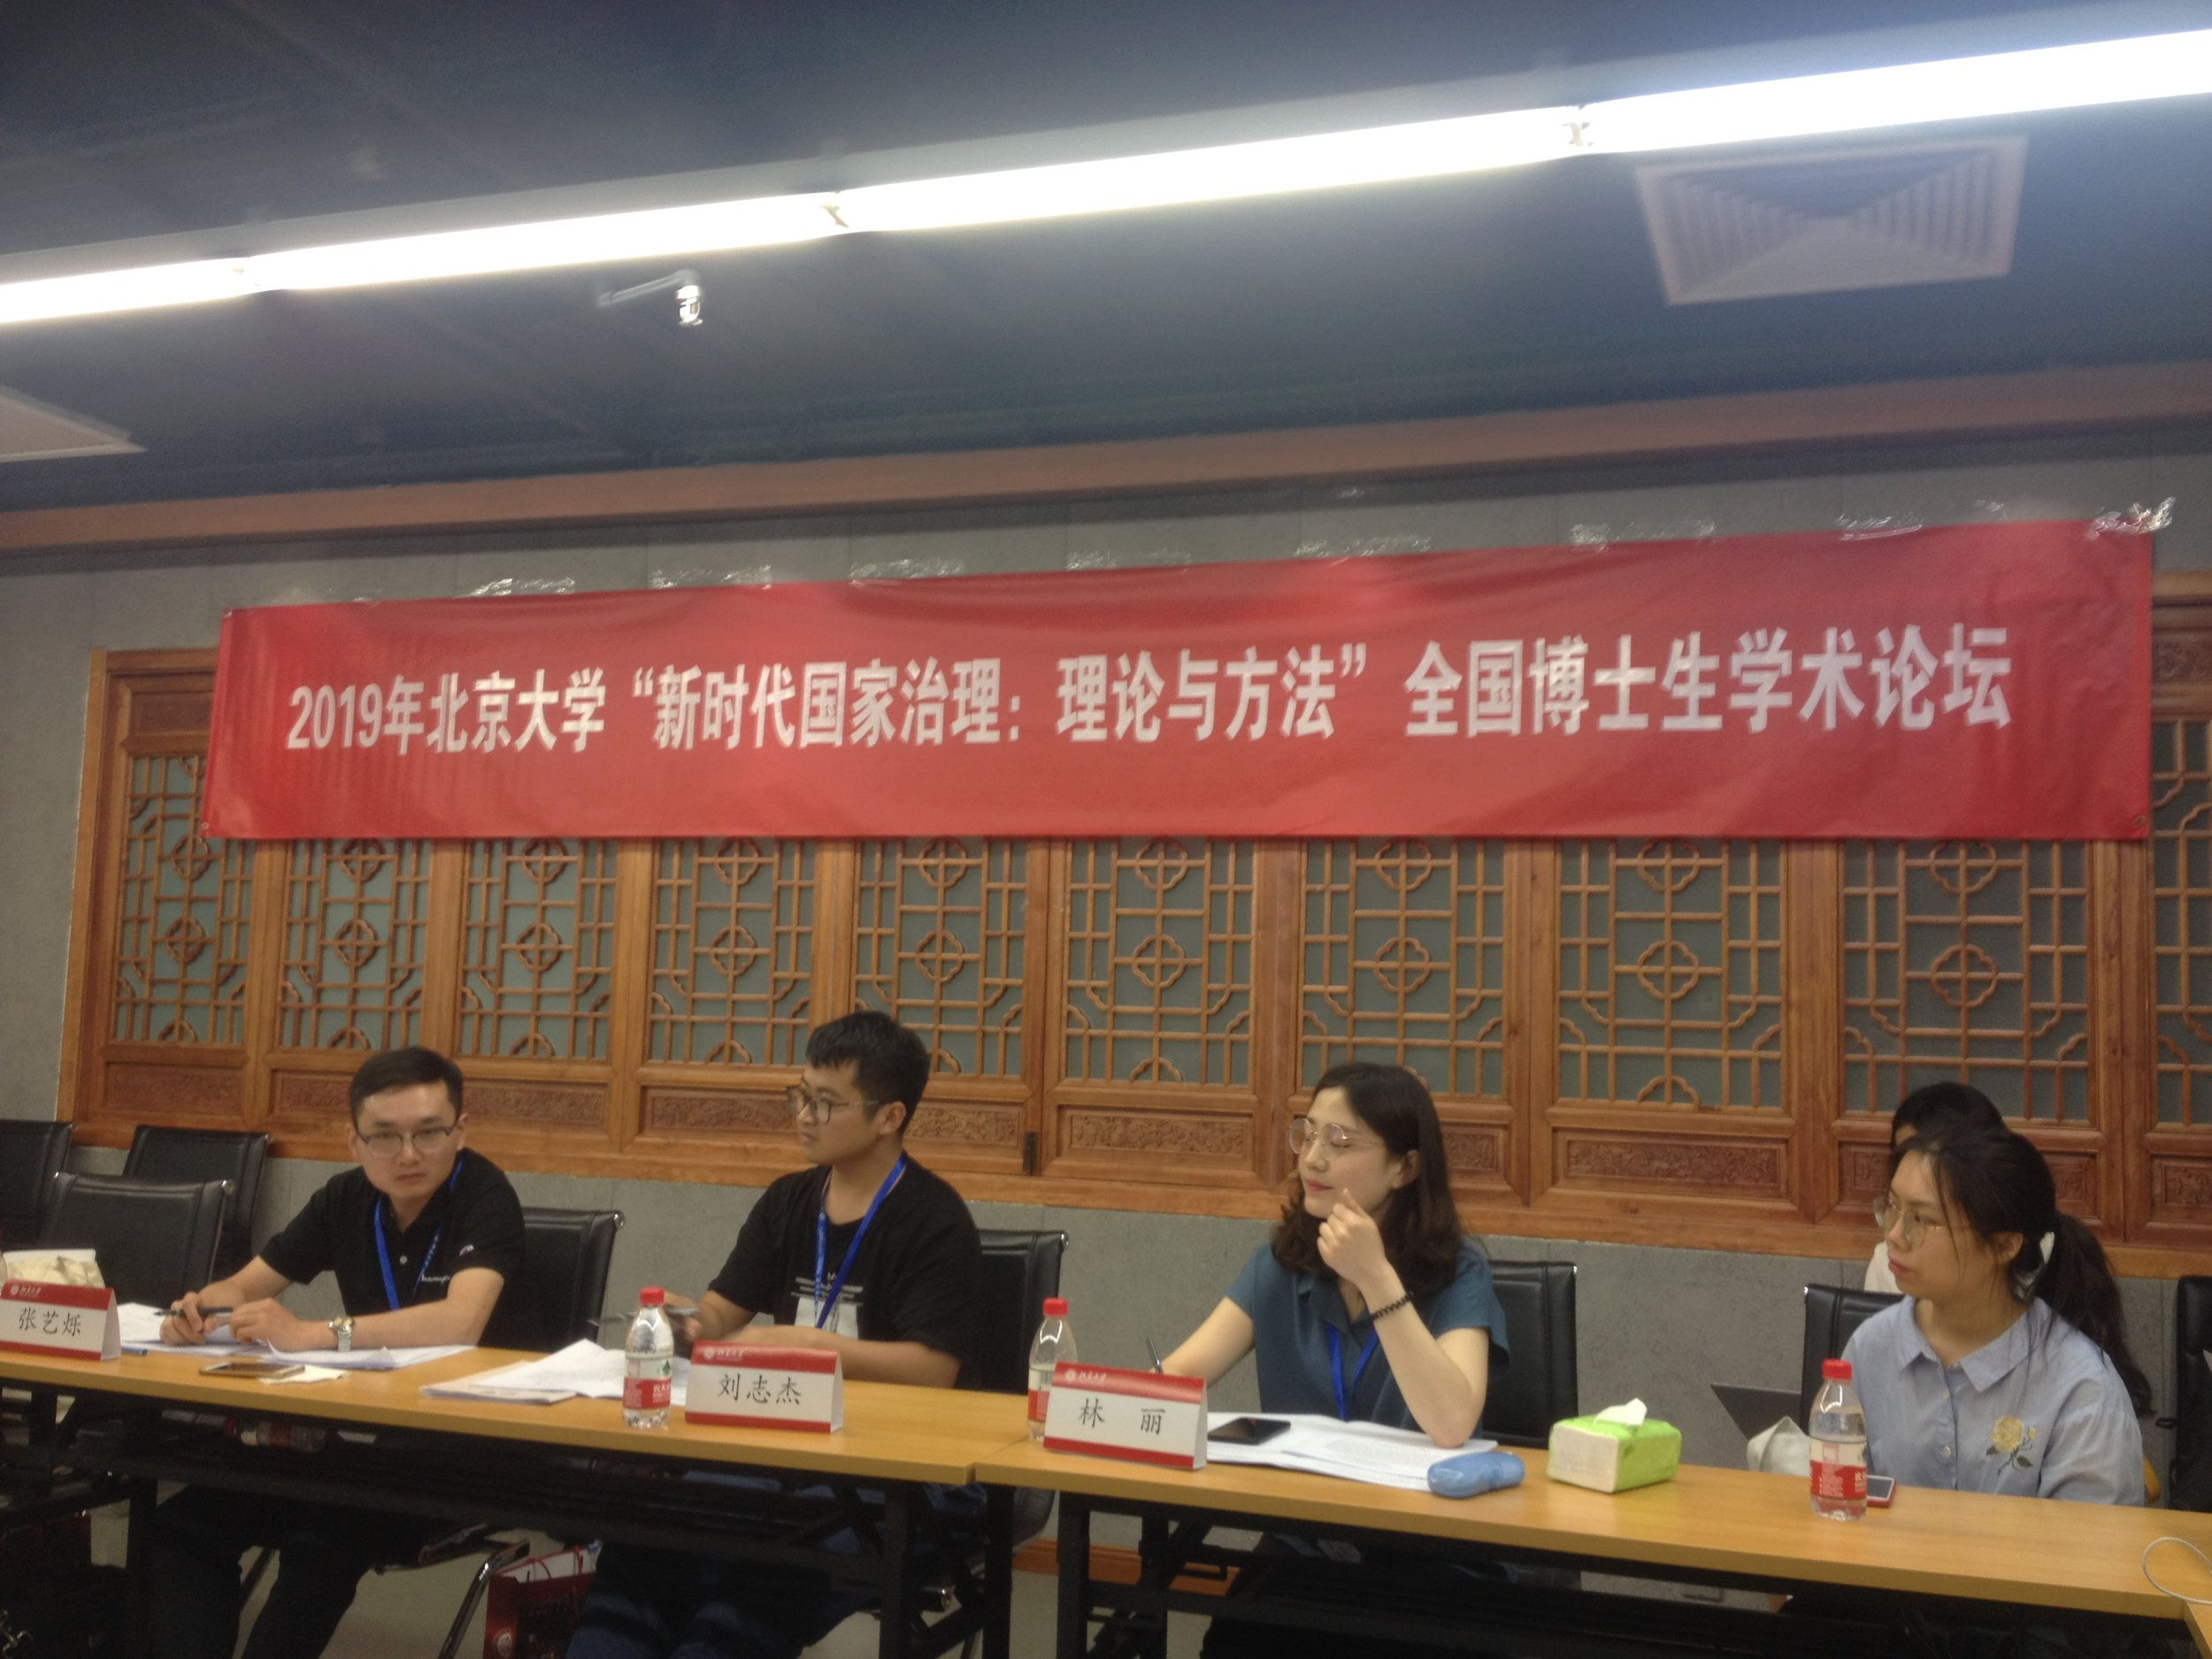 A panel session featuring PhD candidates from Chinese C9 universities at the 'State Governance in a New Era: Theory and Methods' Forum at Peking University